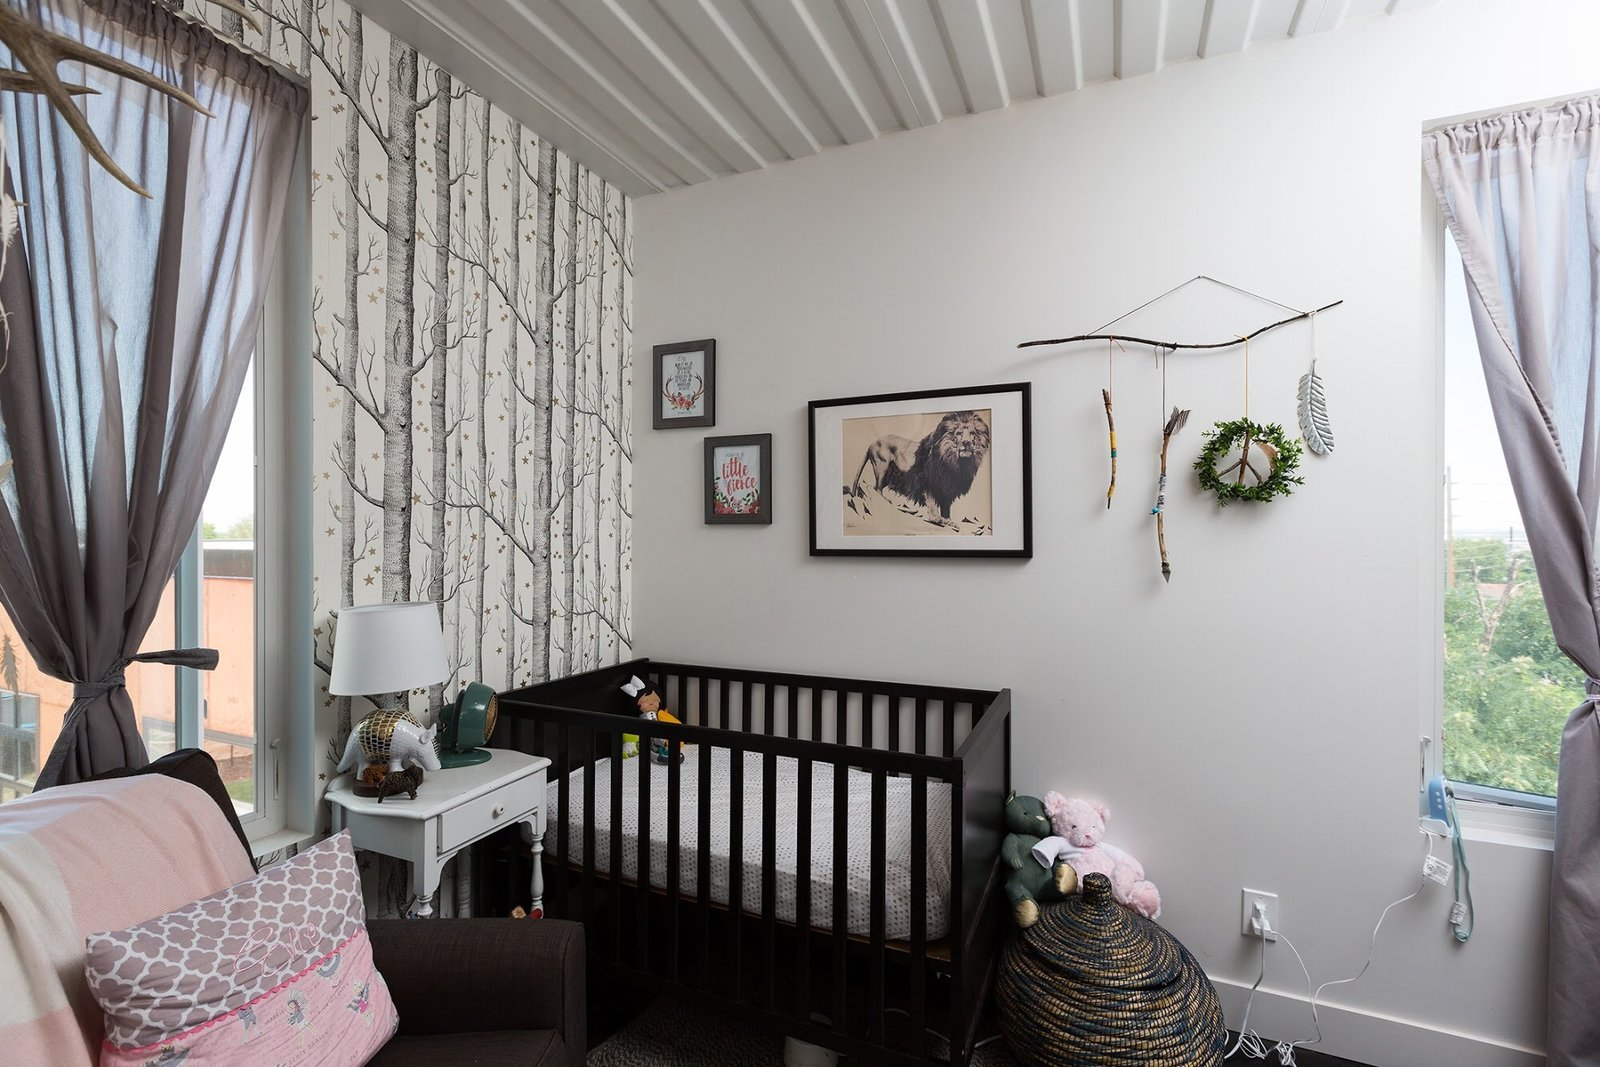 Tagged: Kids Room, Bed, Toddler Age, Bedroom, and Neutral Gender.  The Container house by regan foster